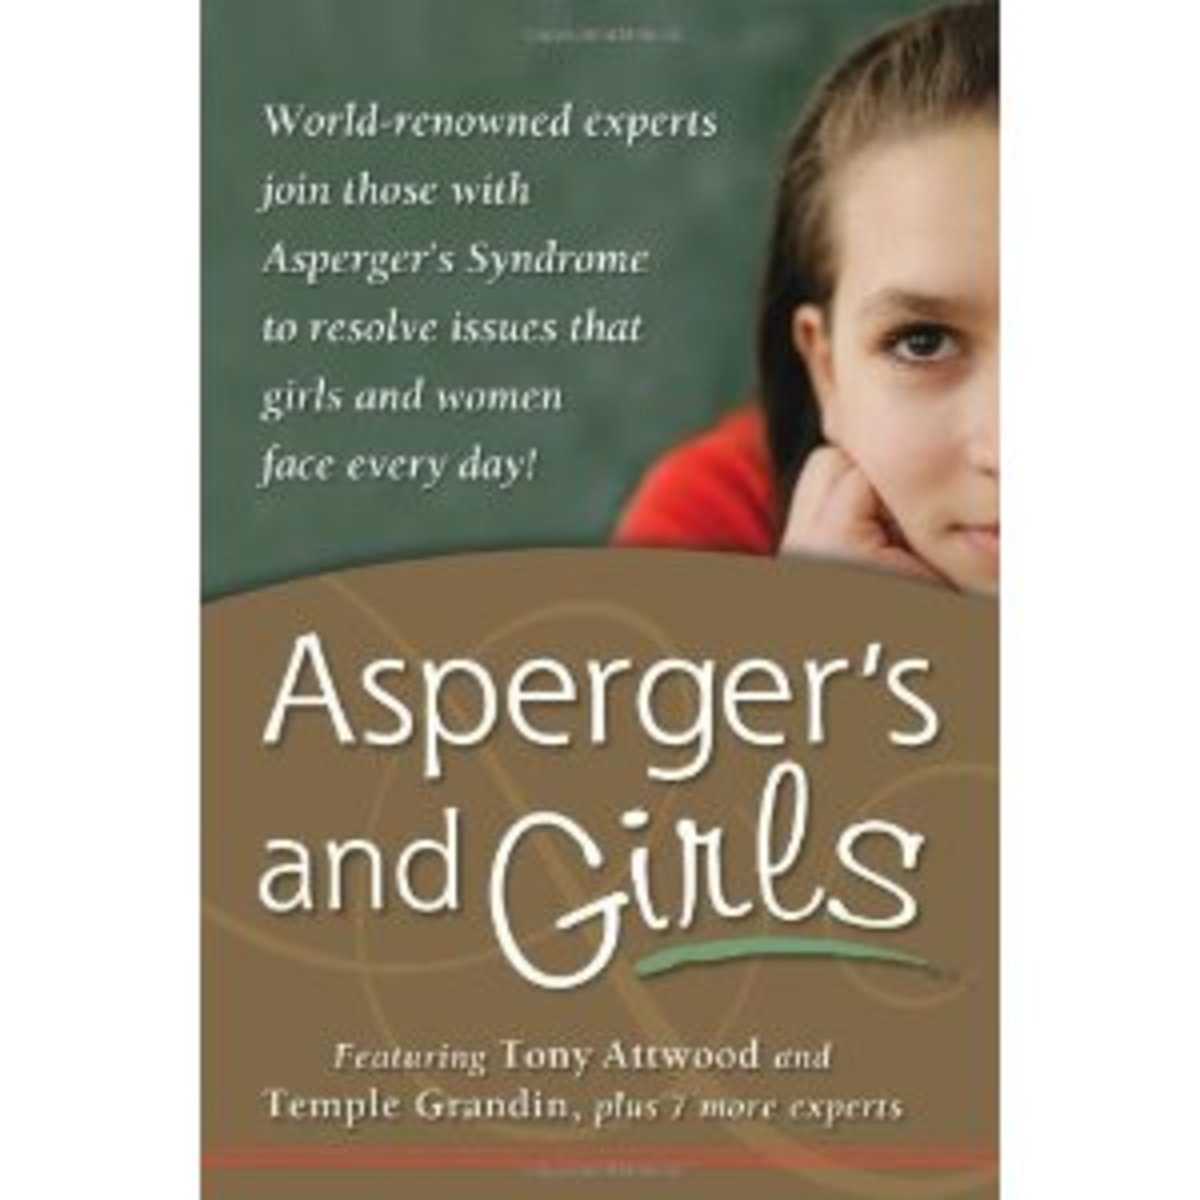 autism-spectrum-disorder-aspergers-syndrome-women-girls-dr-attwood